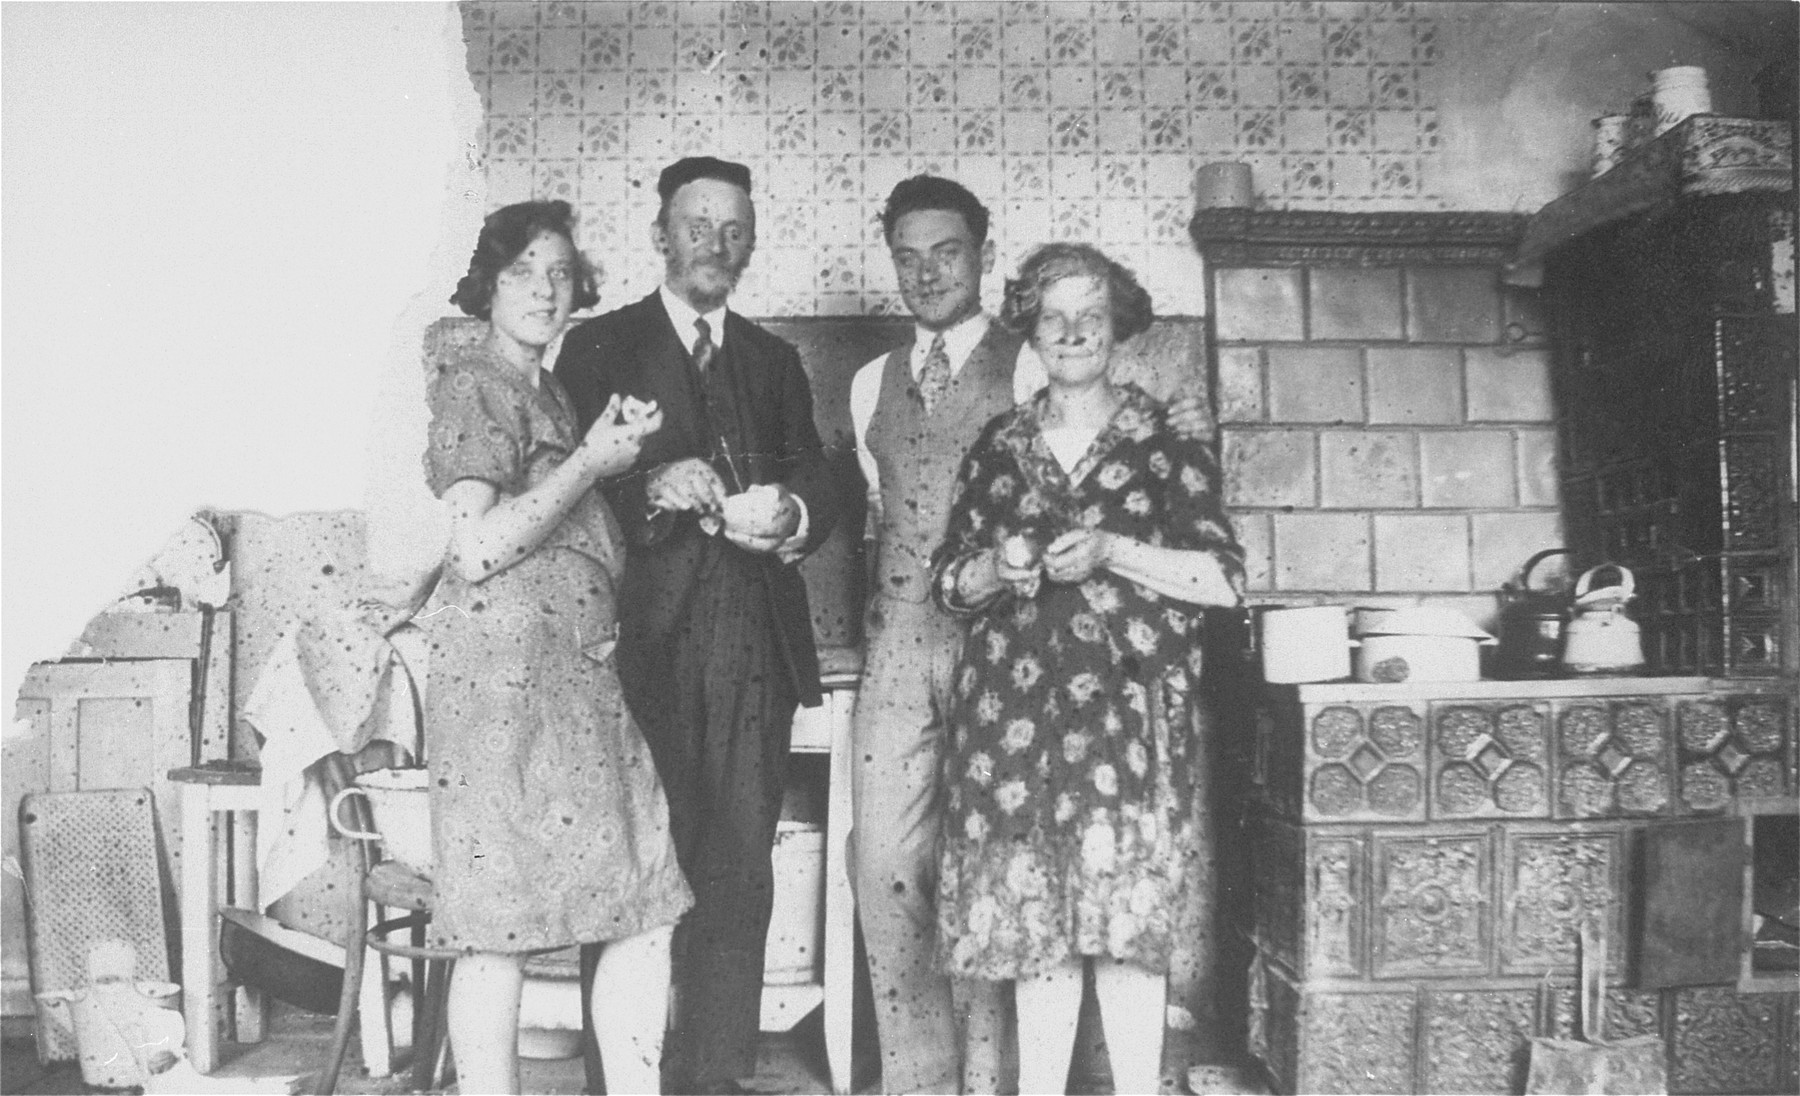 Members of the Ringelheim family pose in their kitchen in Jaroslaw, Poland.  Pictured from left to right are: Chaja, Jacob, David and Miriam Ringelheim.  David is visiting from the United States.  David Ringelheim is the donor's father.